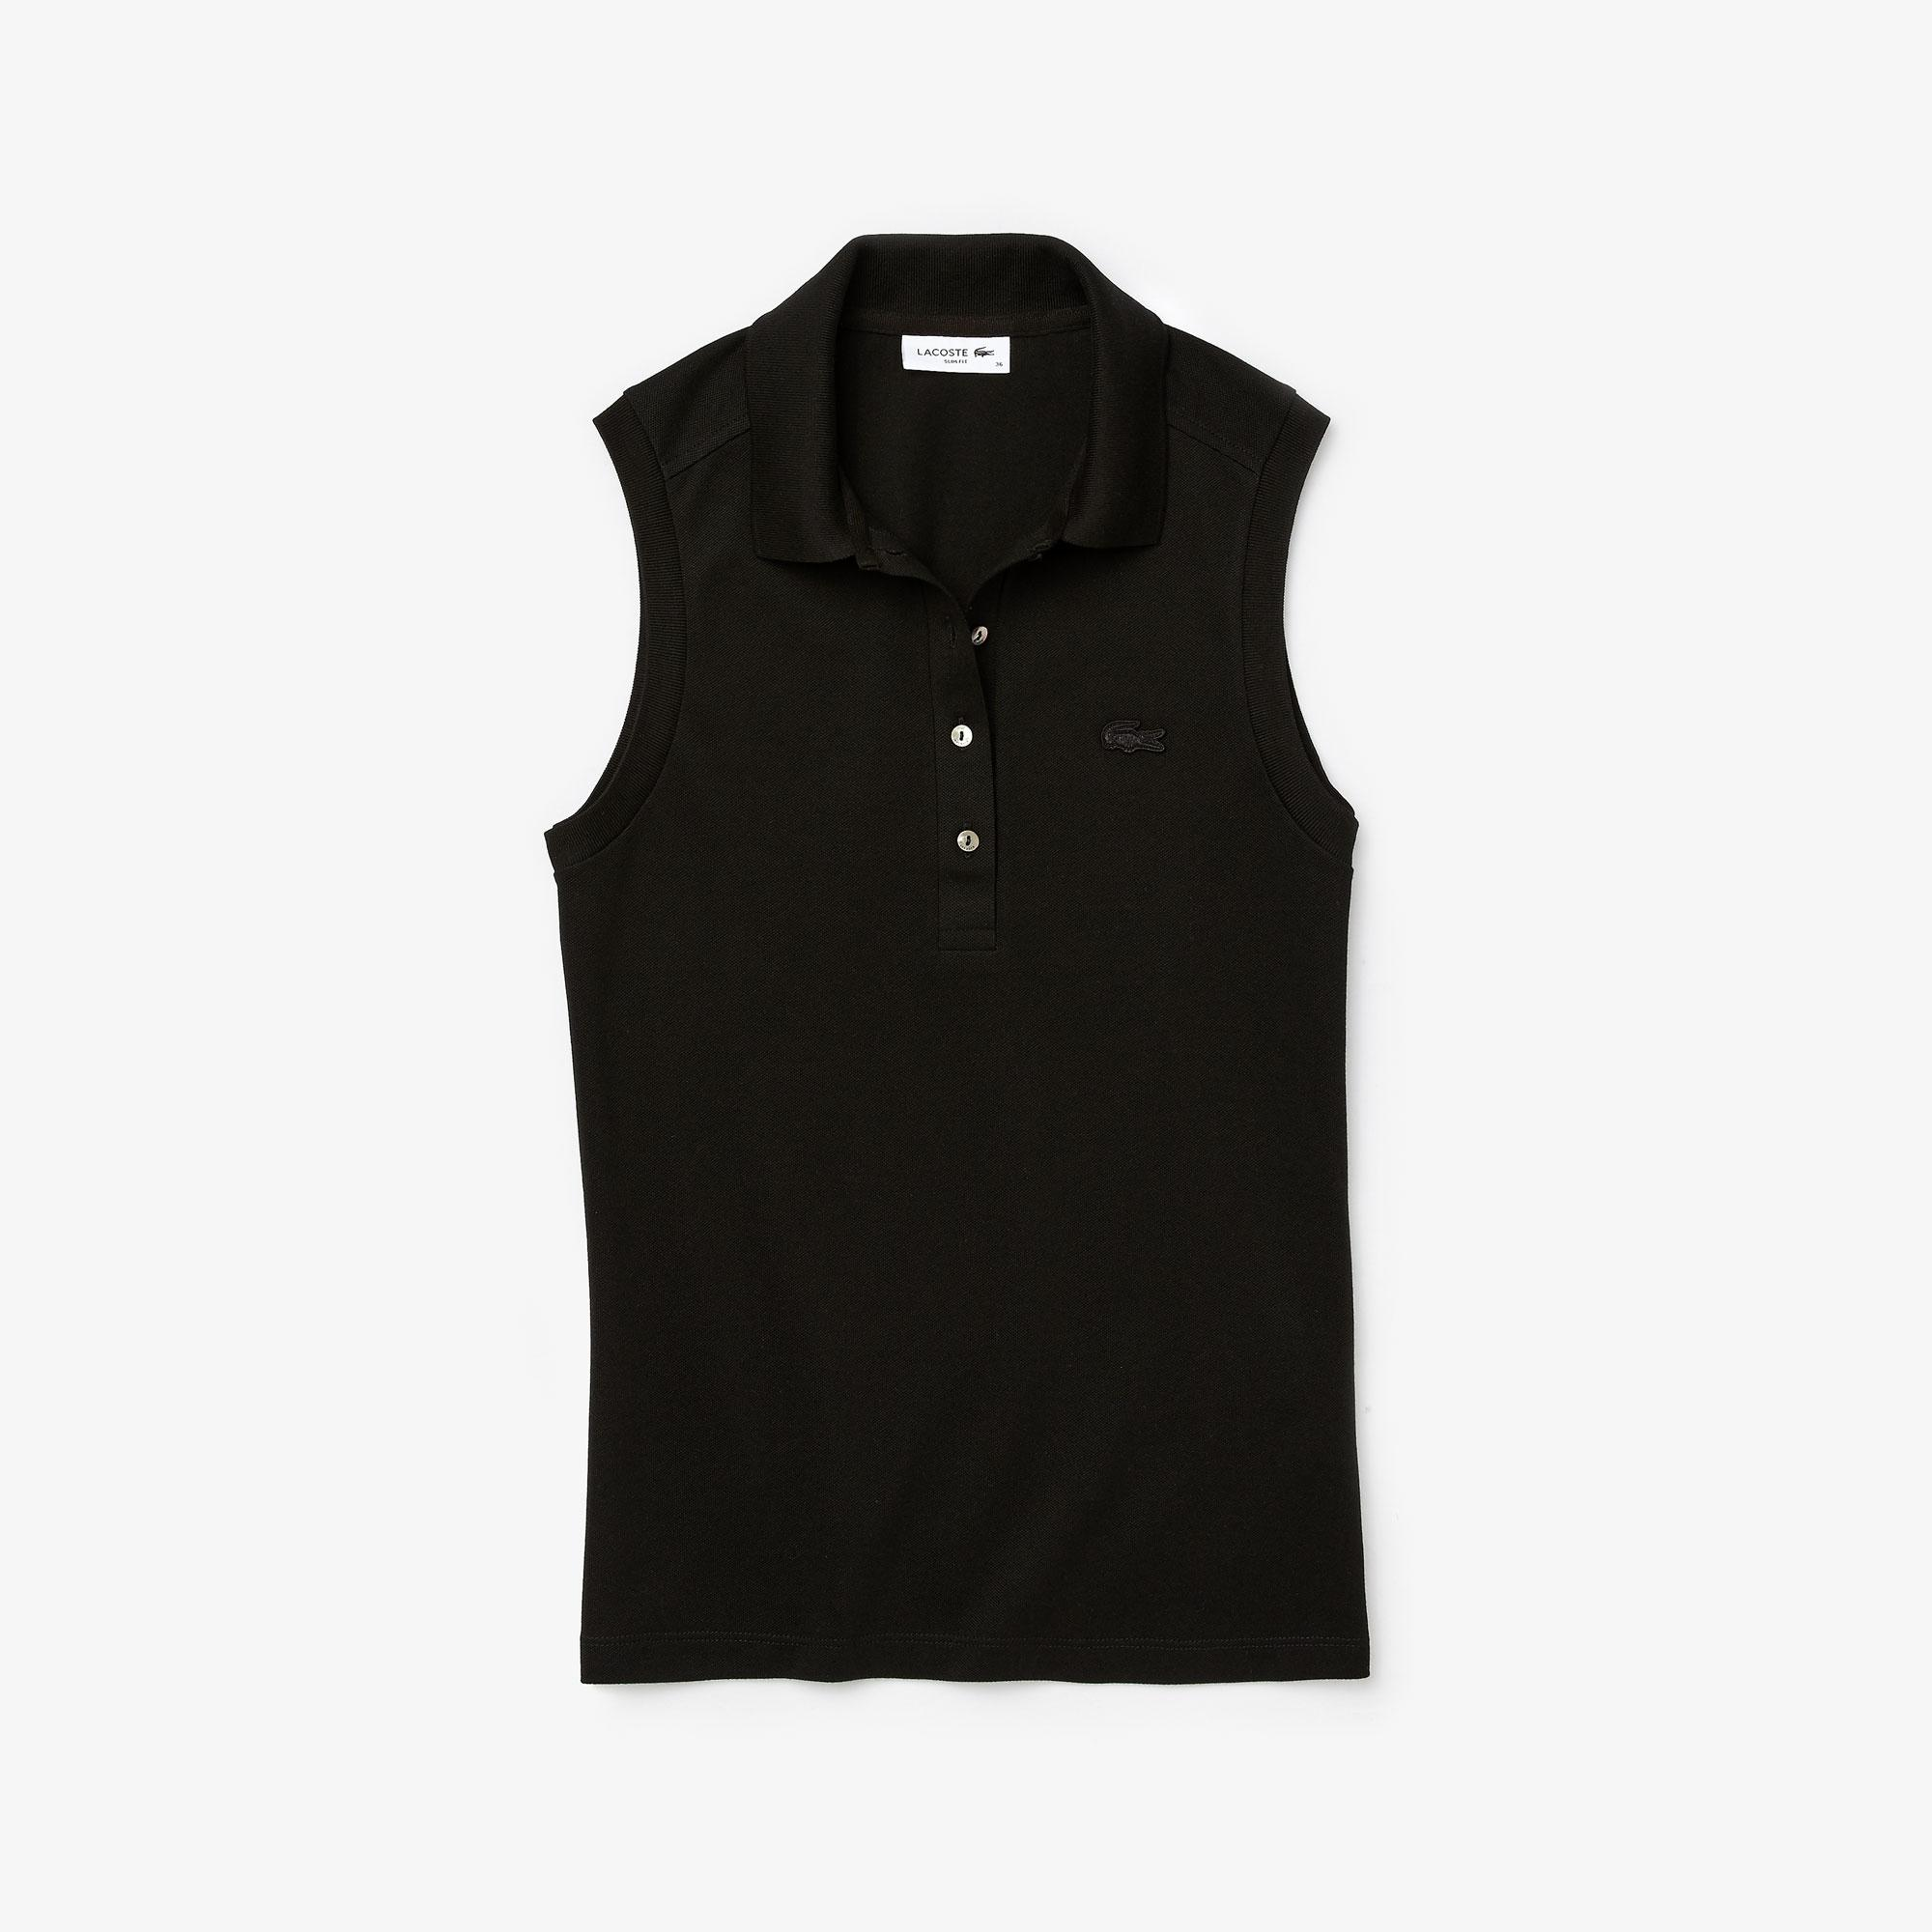 Lacoste Women's Sleeveless Cotton Piqué Polo